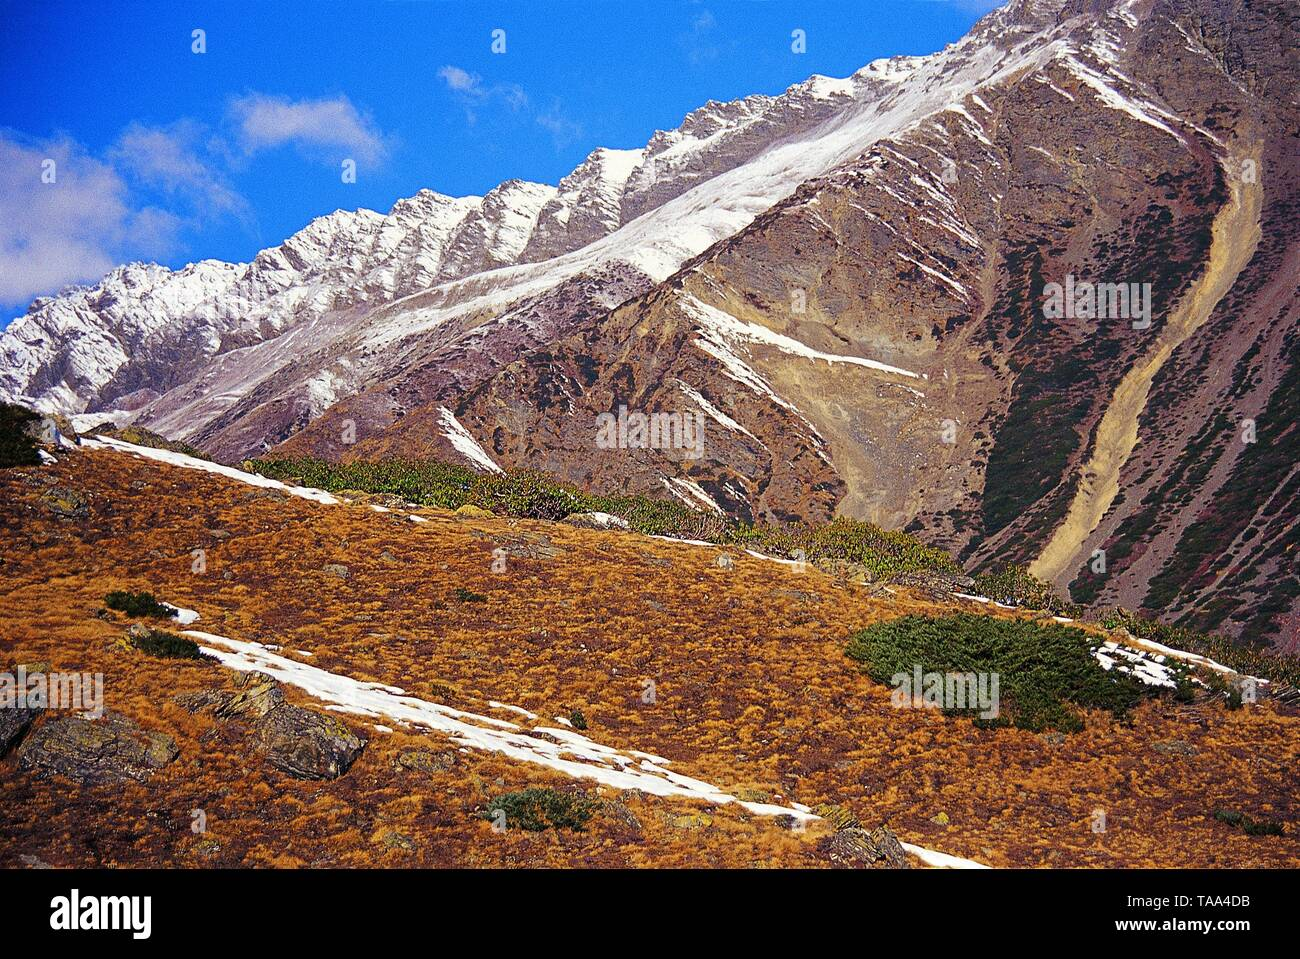 Fresh Snow Patches on Grassy Hills on Way to Pachhu Glacier (Uttarakhand). - Stock Image